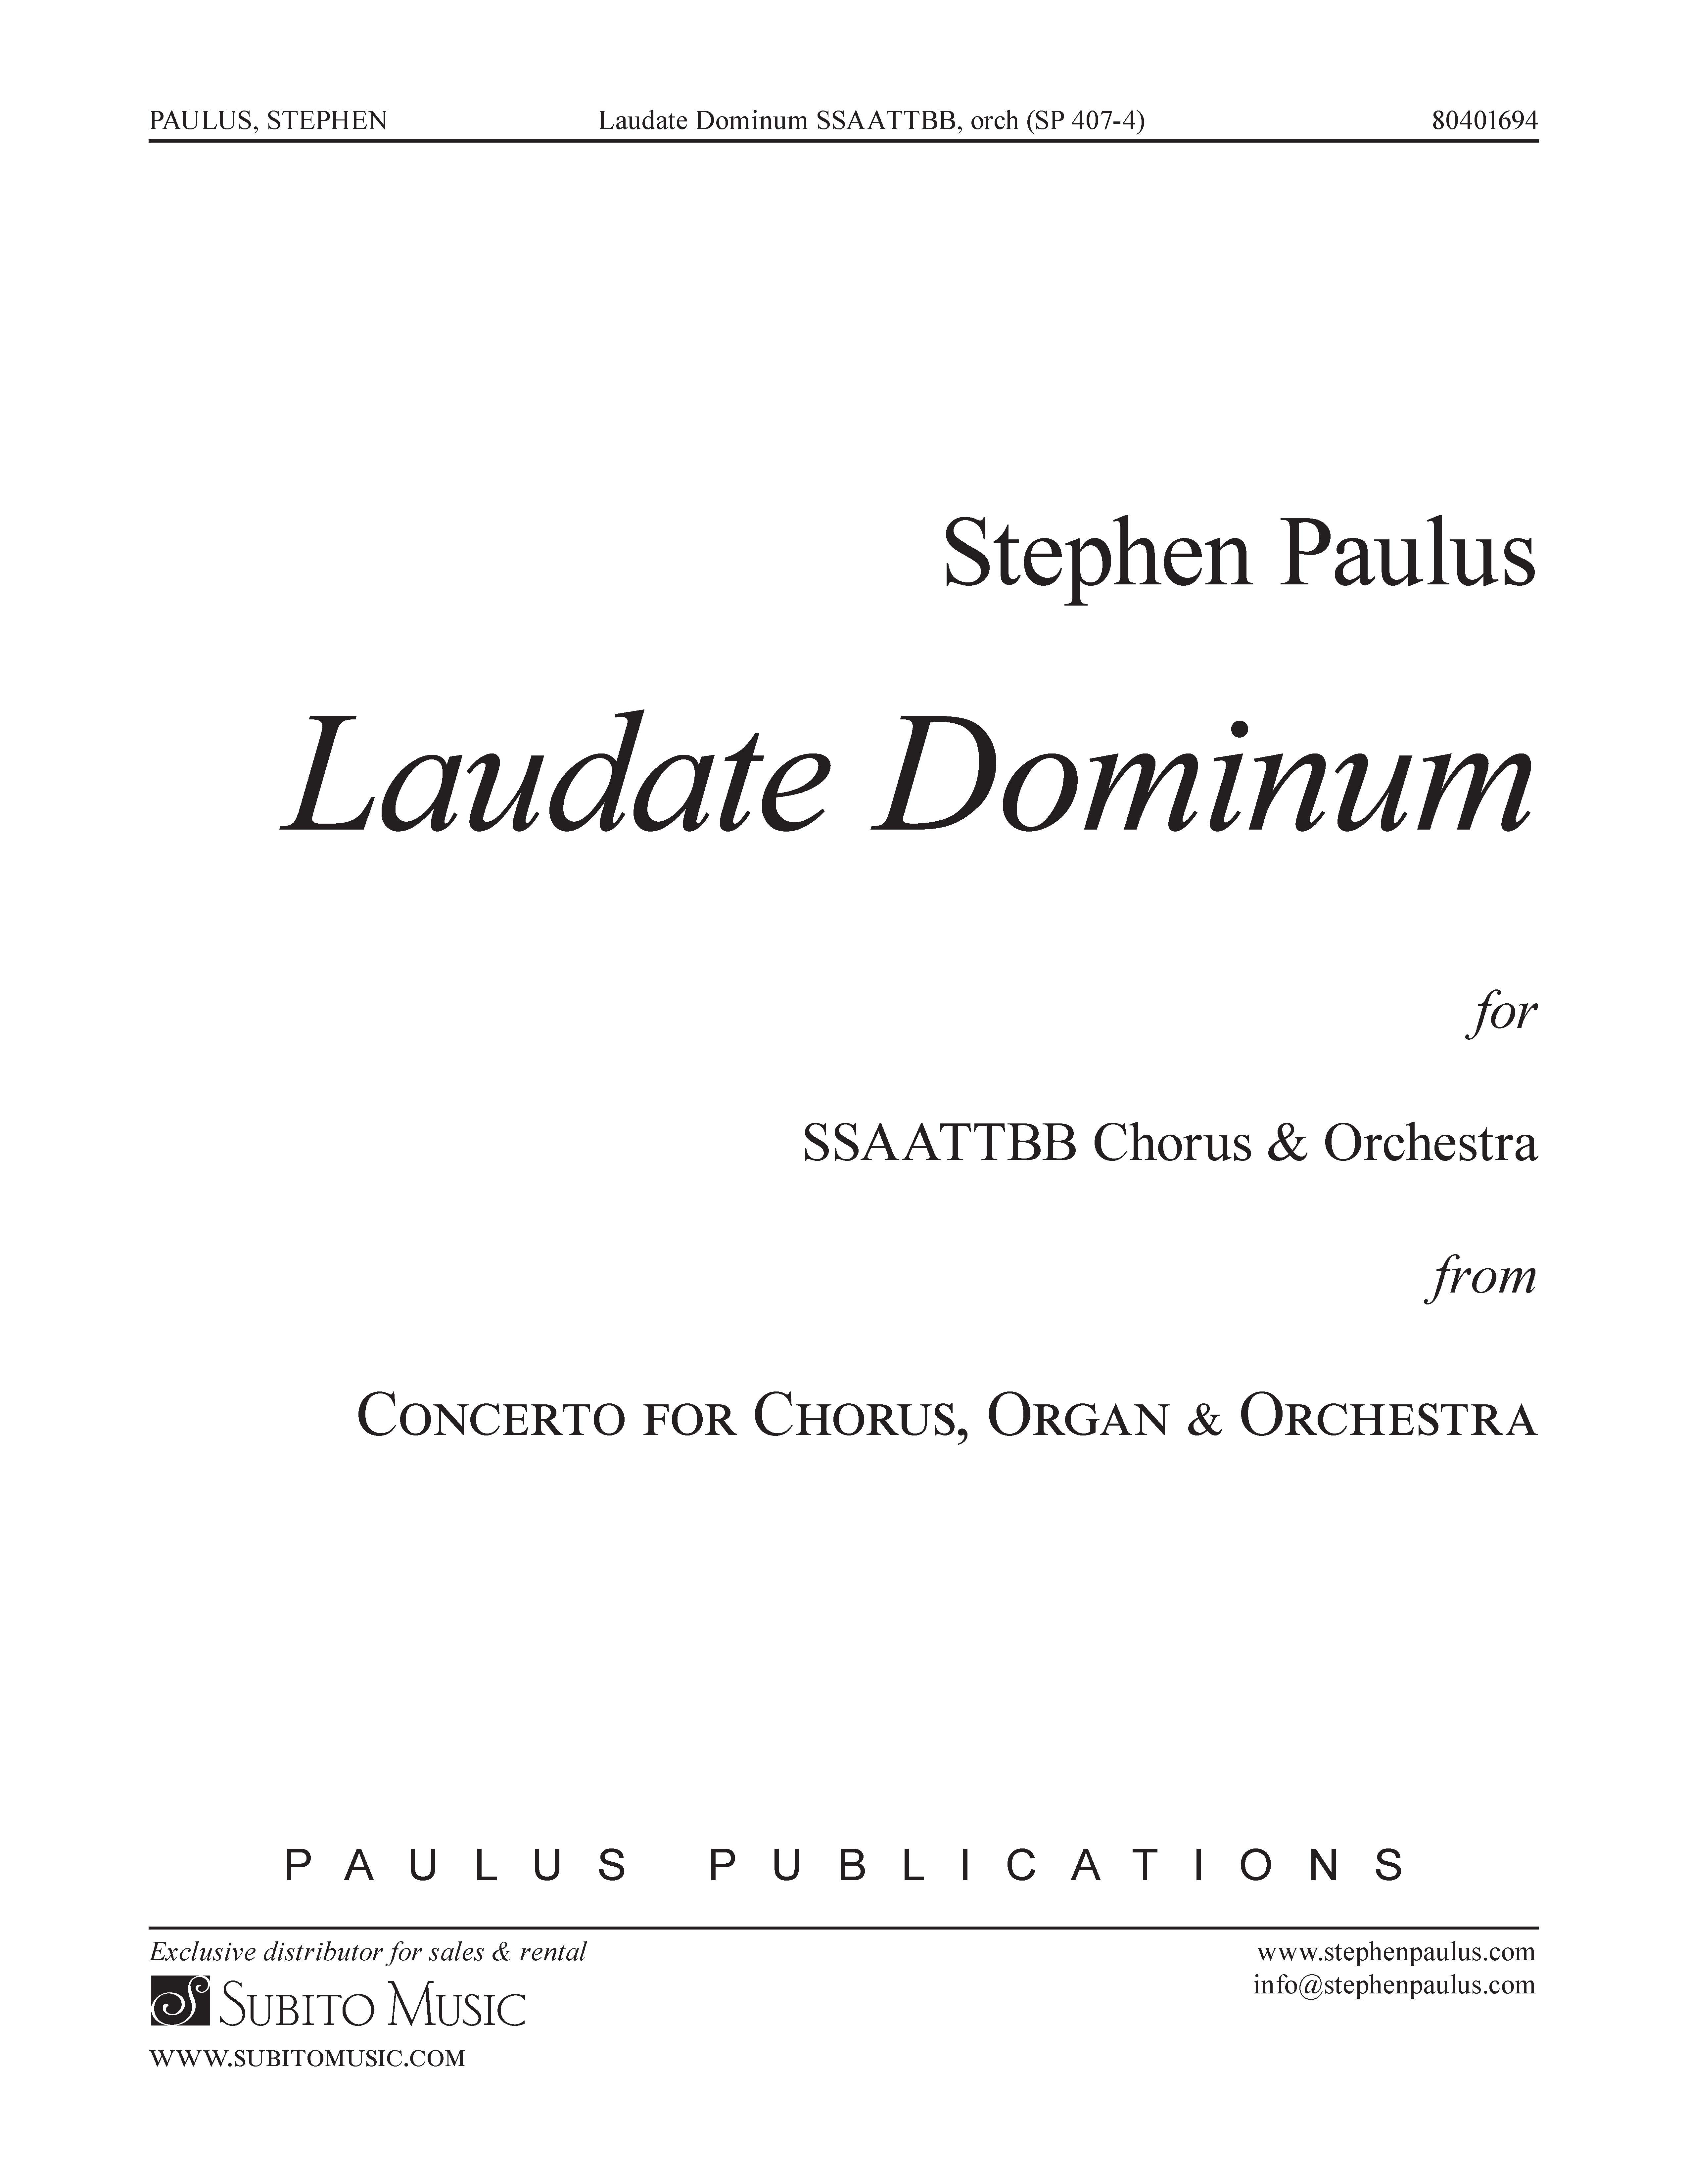 Laudate Dominum (from Concerto for Chorus, Organ & Orchestra) for SATB Chorus & Keyboard reduction